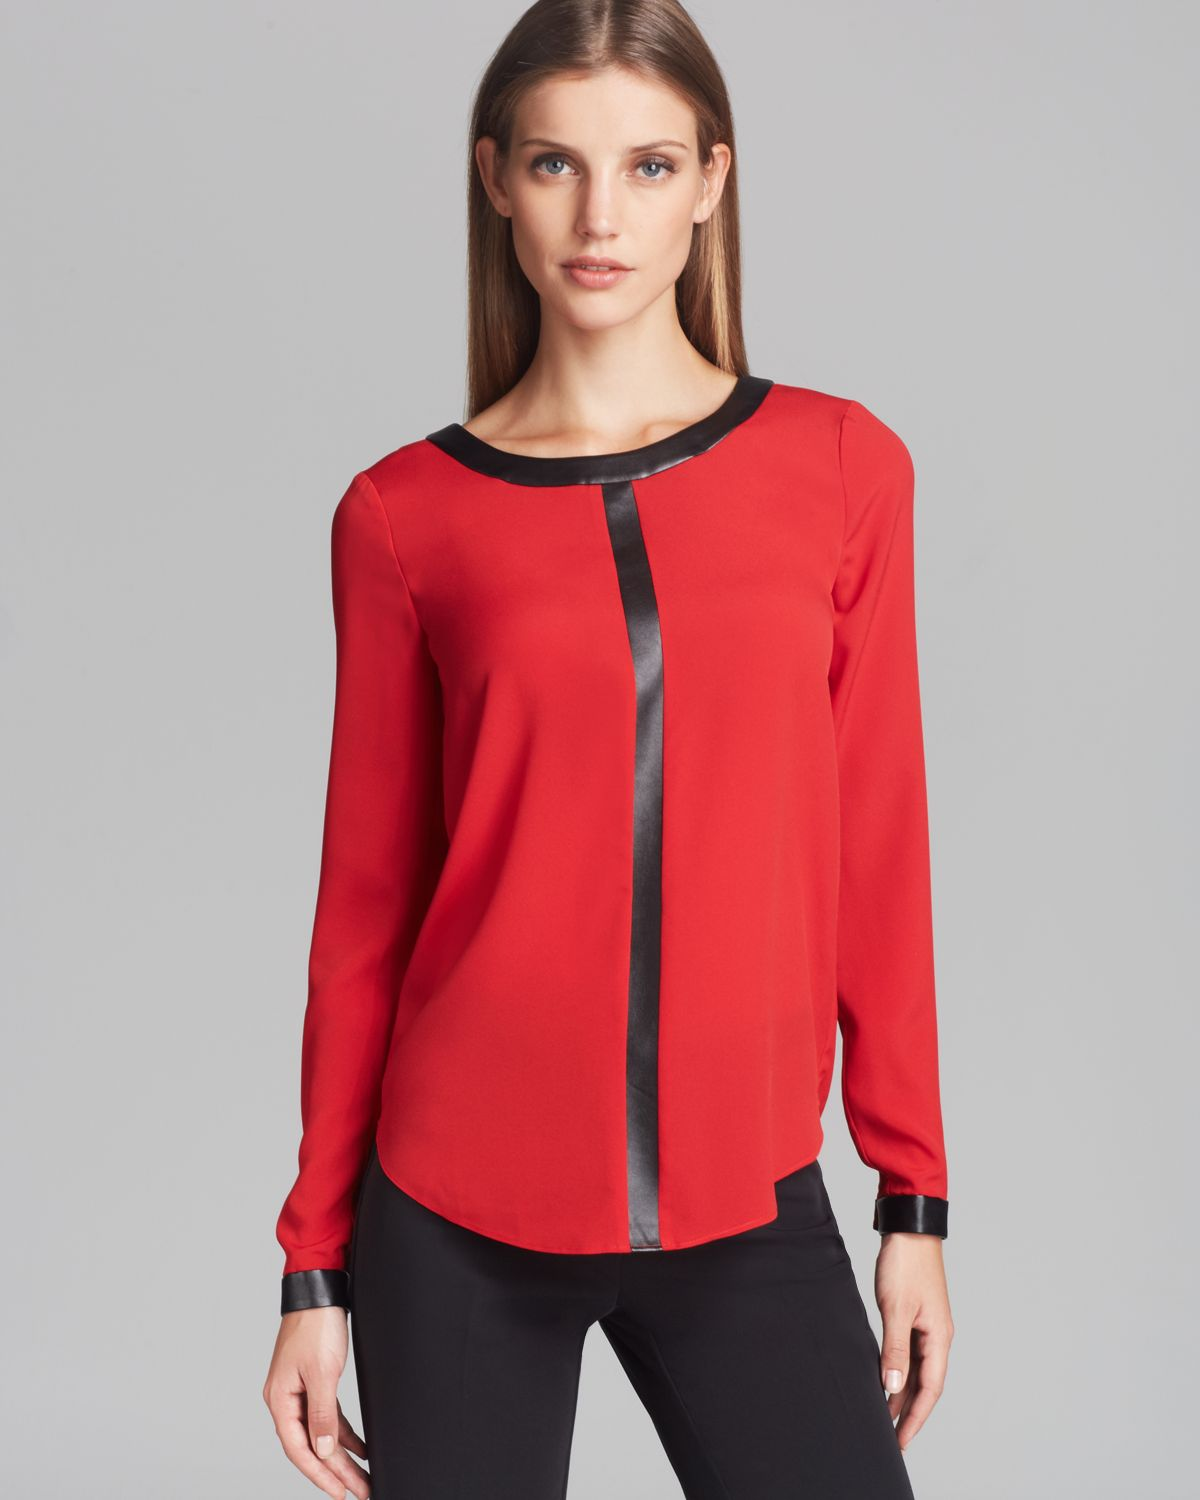 Lyst dkny blouse with faux leather trim in red for Red leather shirt for womens